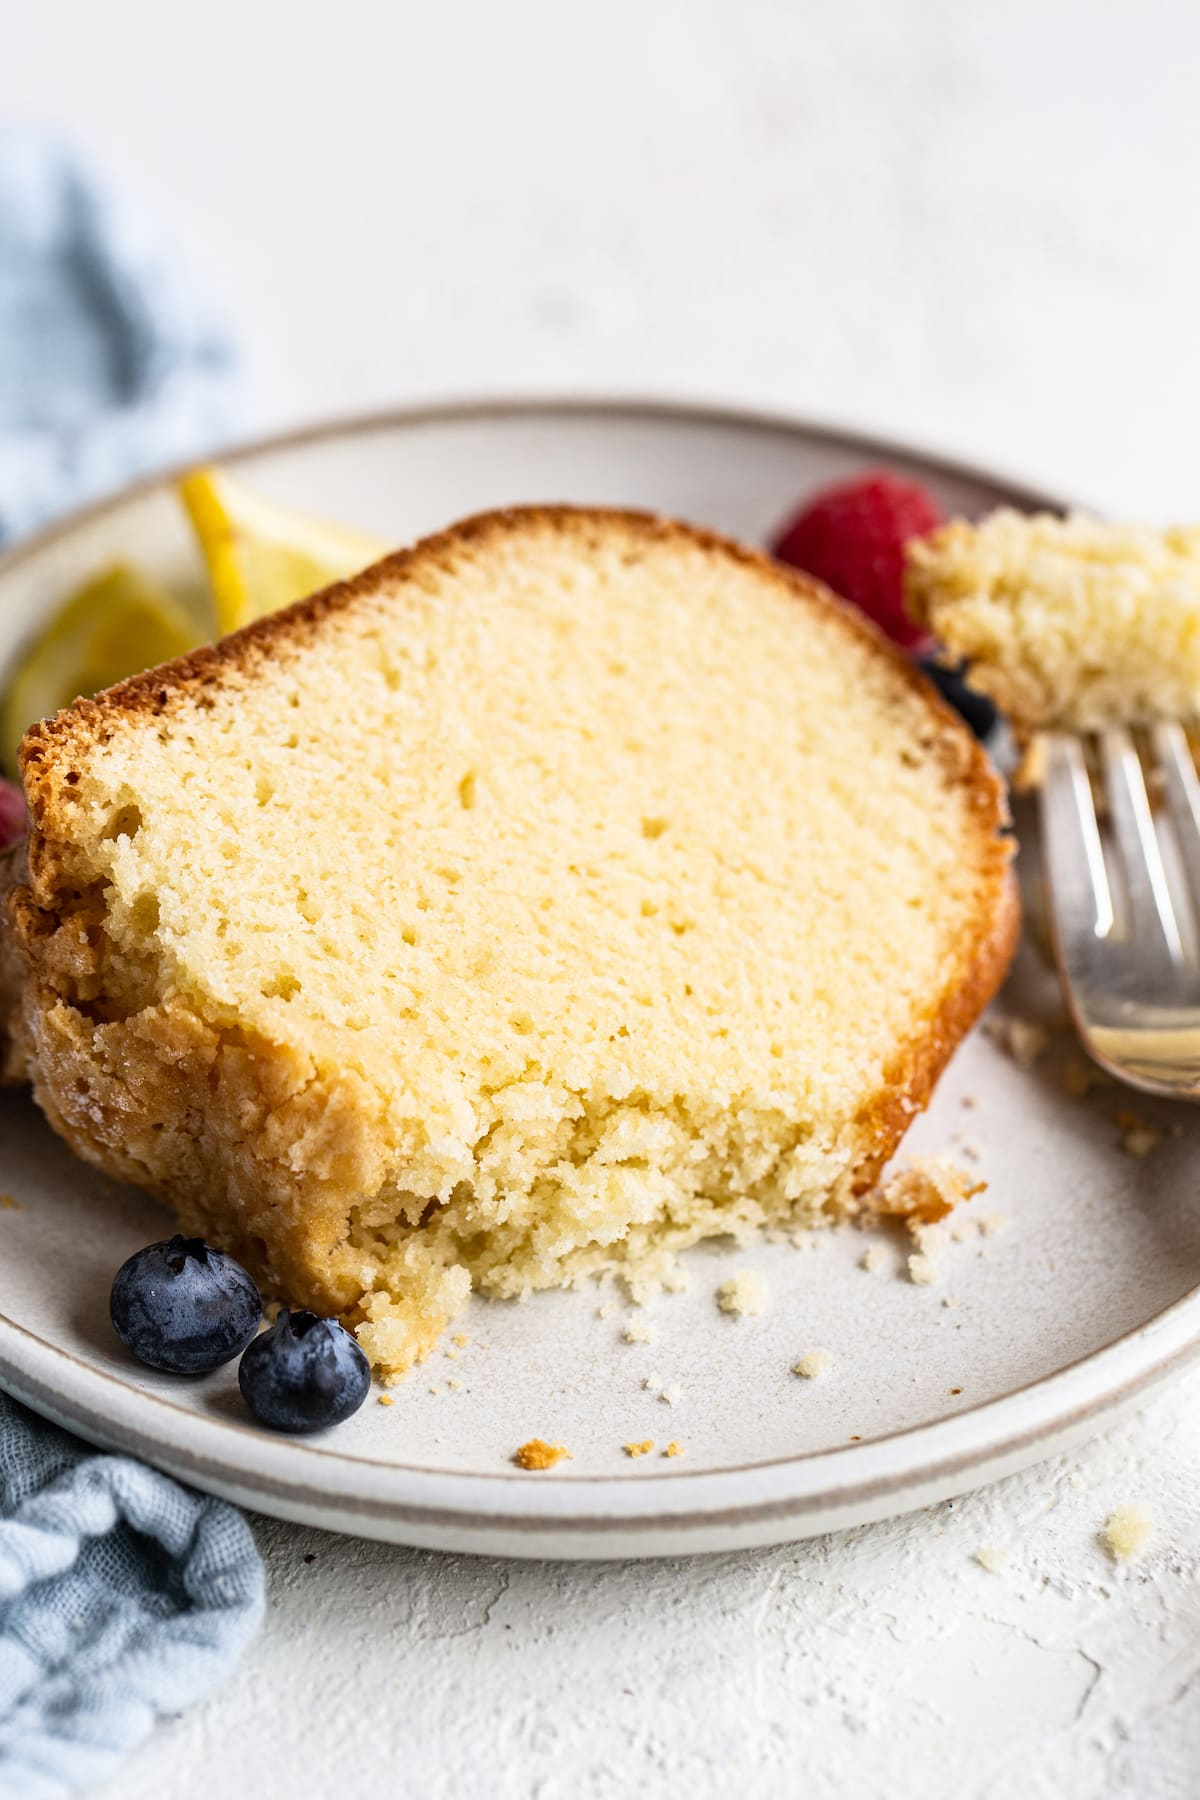 Slice of pound cake on a plate garnished with berries. Fork has taken a bite out of the cake.